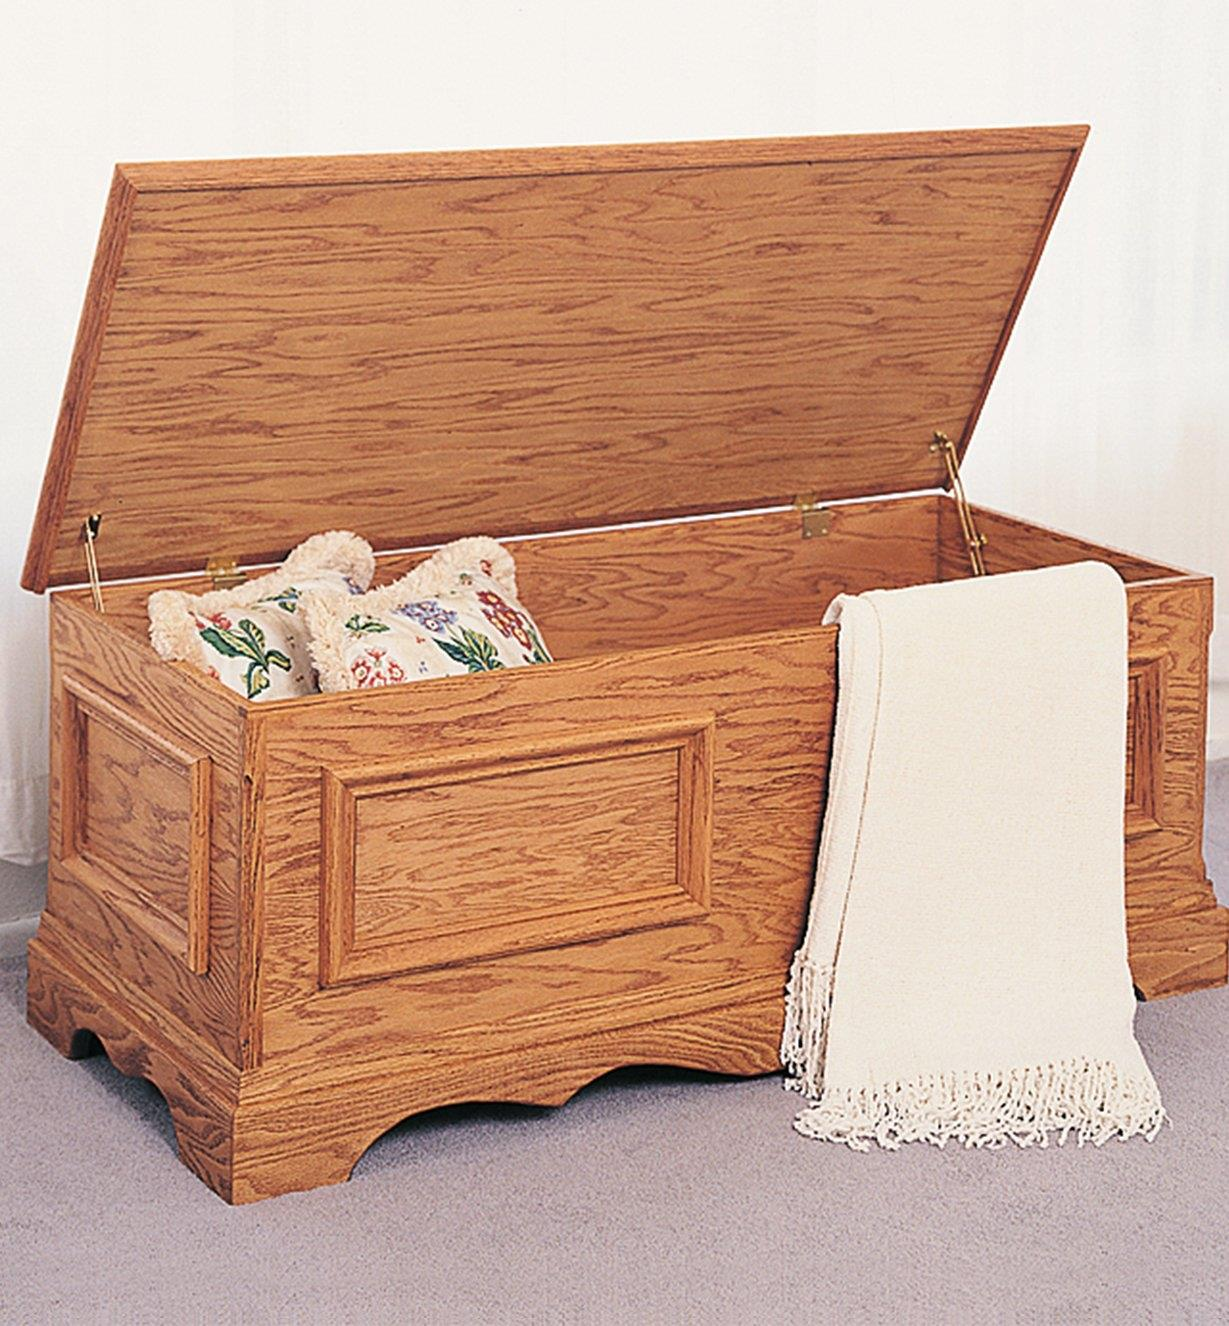 11L0225 - Blanket Chest Plan